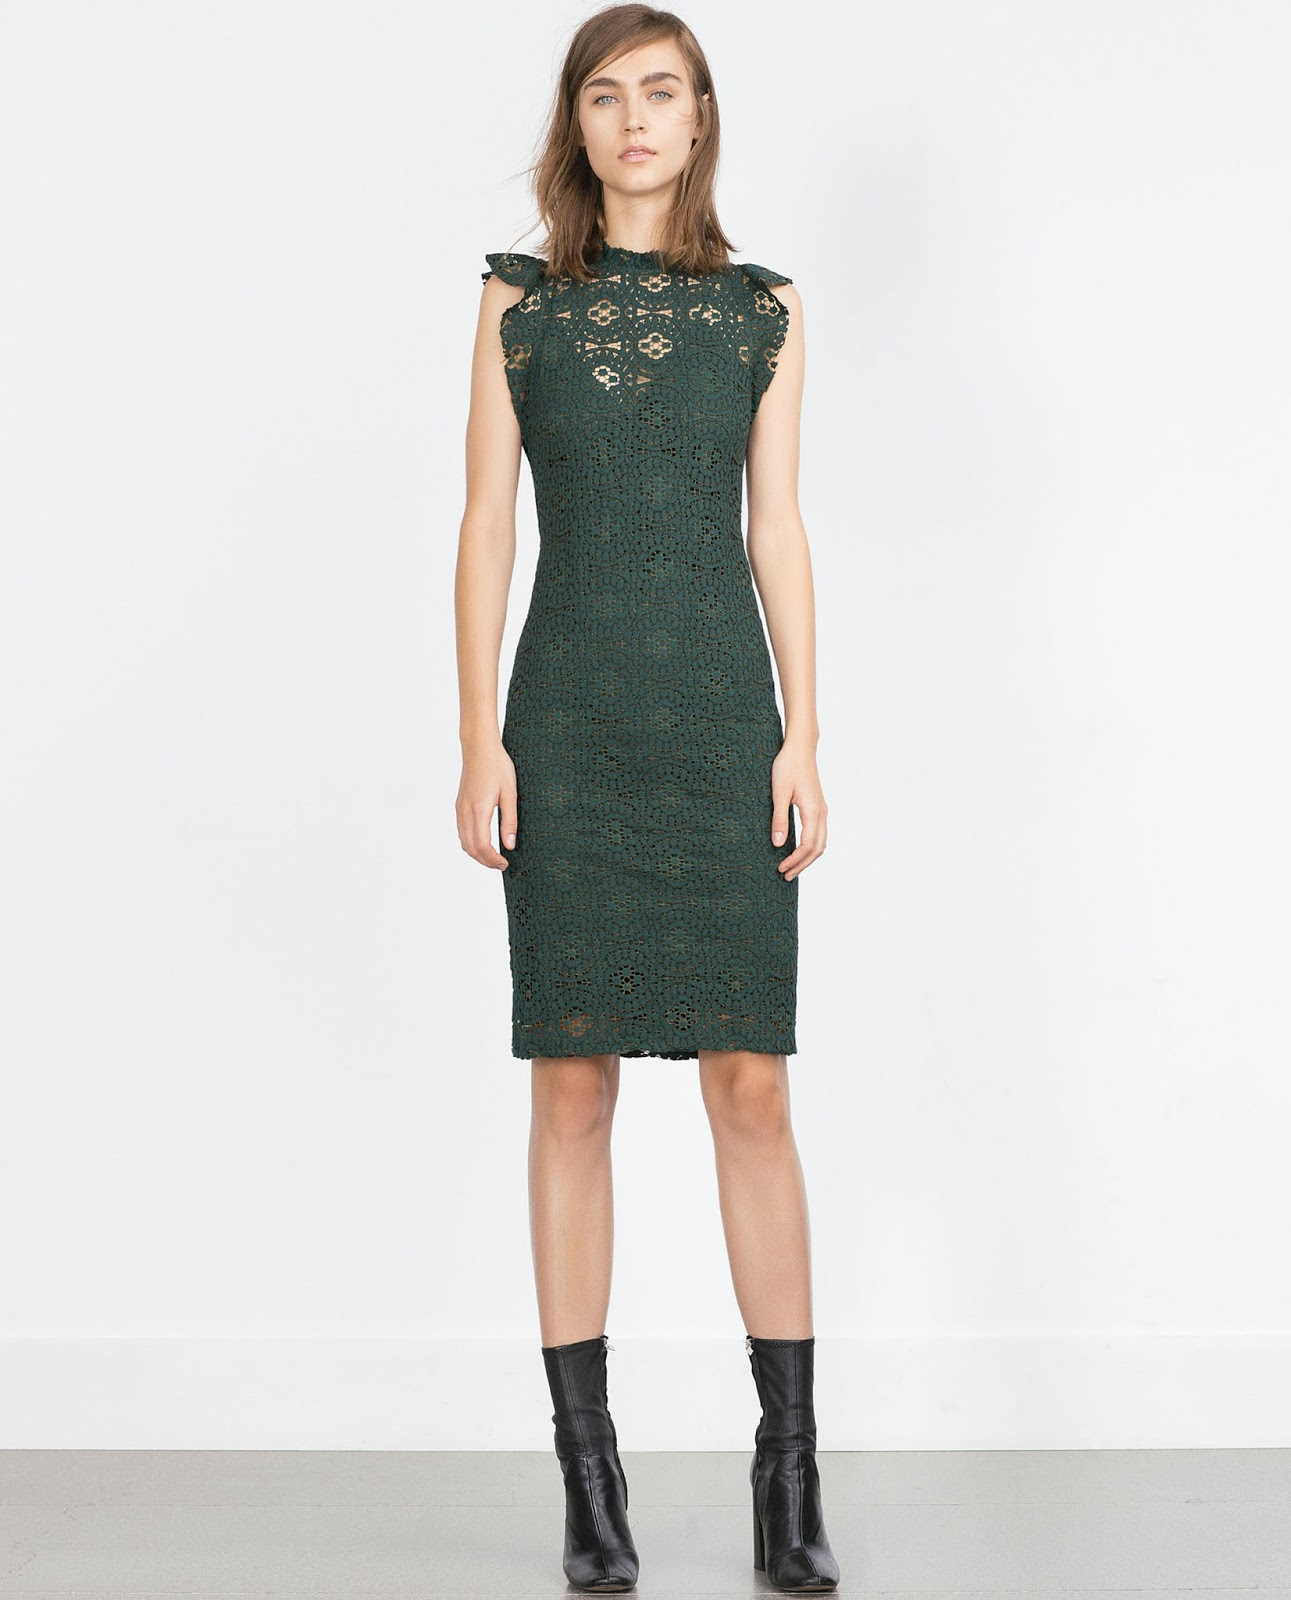 Eniwhere Fashion - Zara's Wishlist - Natale - dress